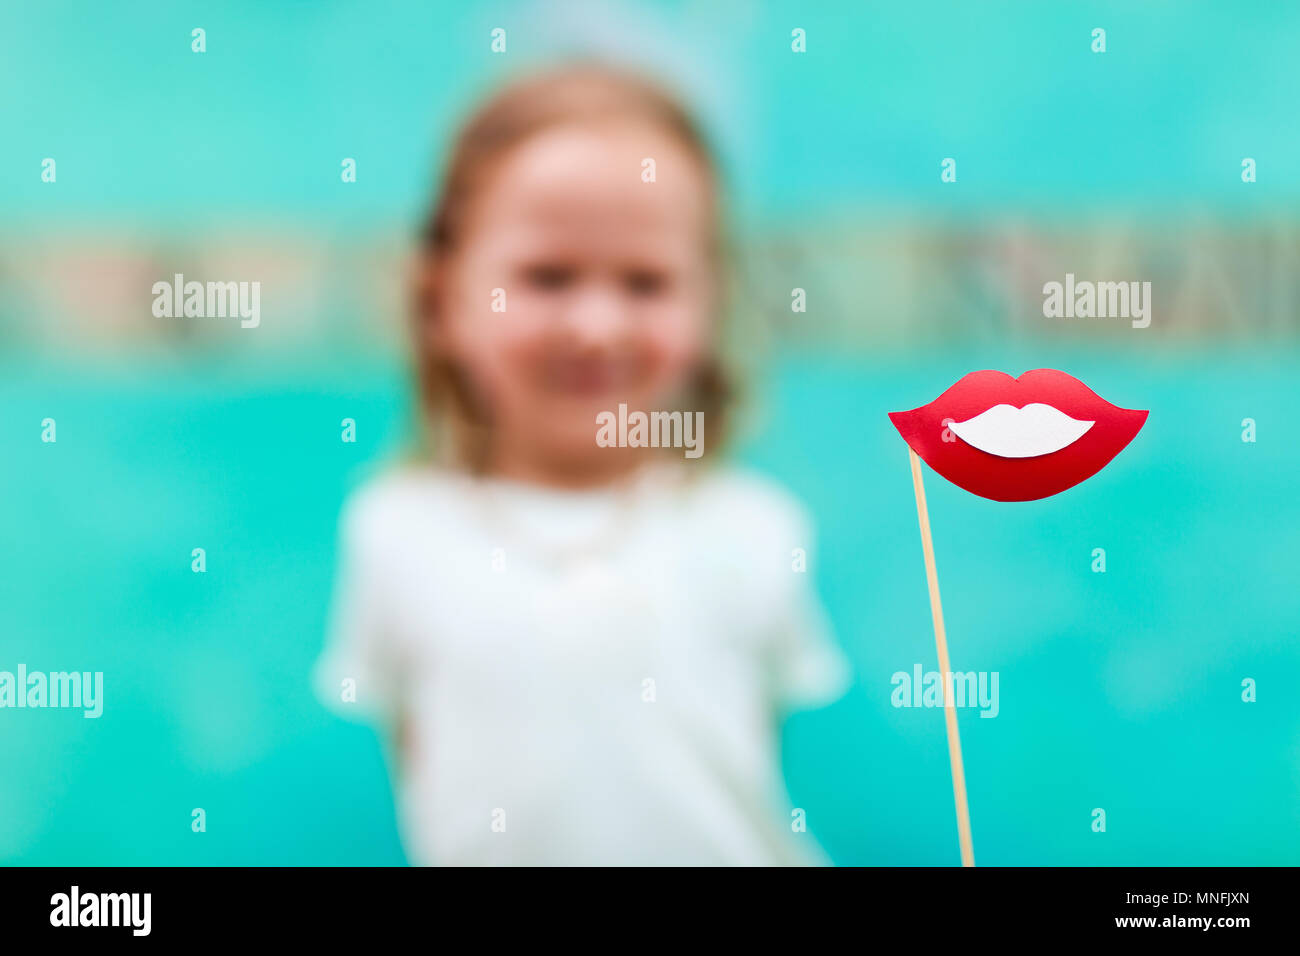 Adorable little girl holding lips party accessory - Stock Image